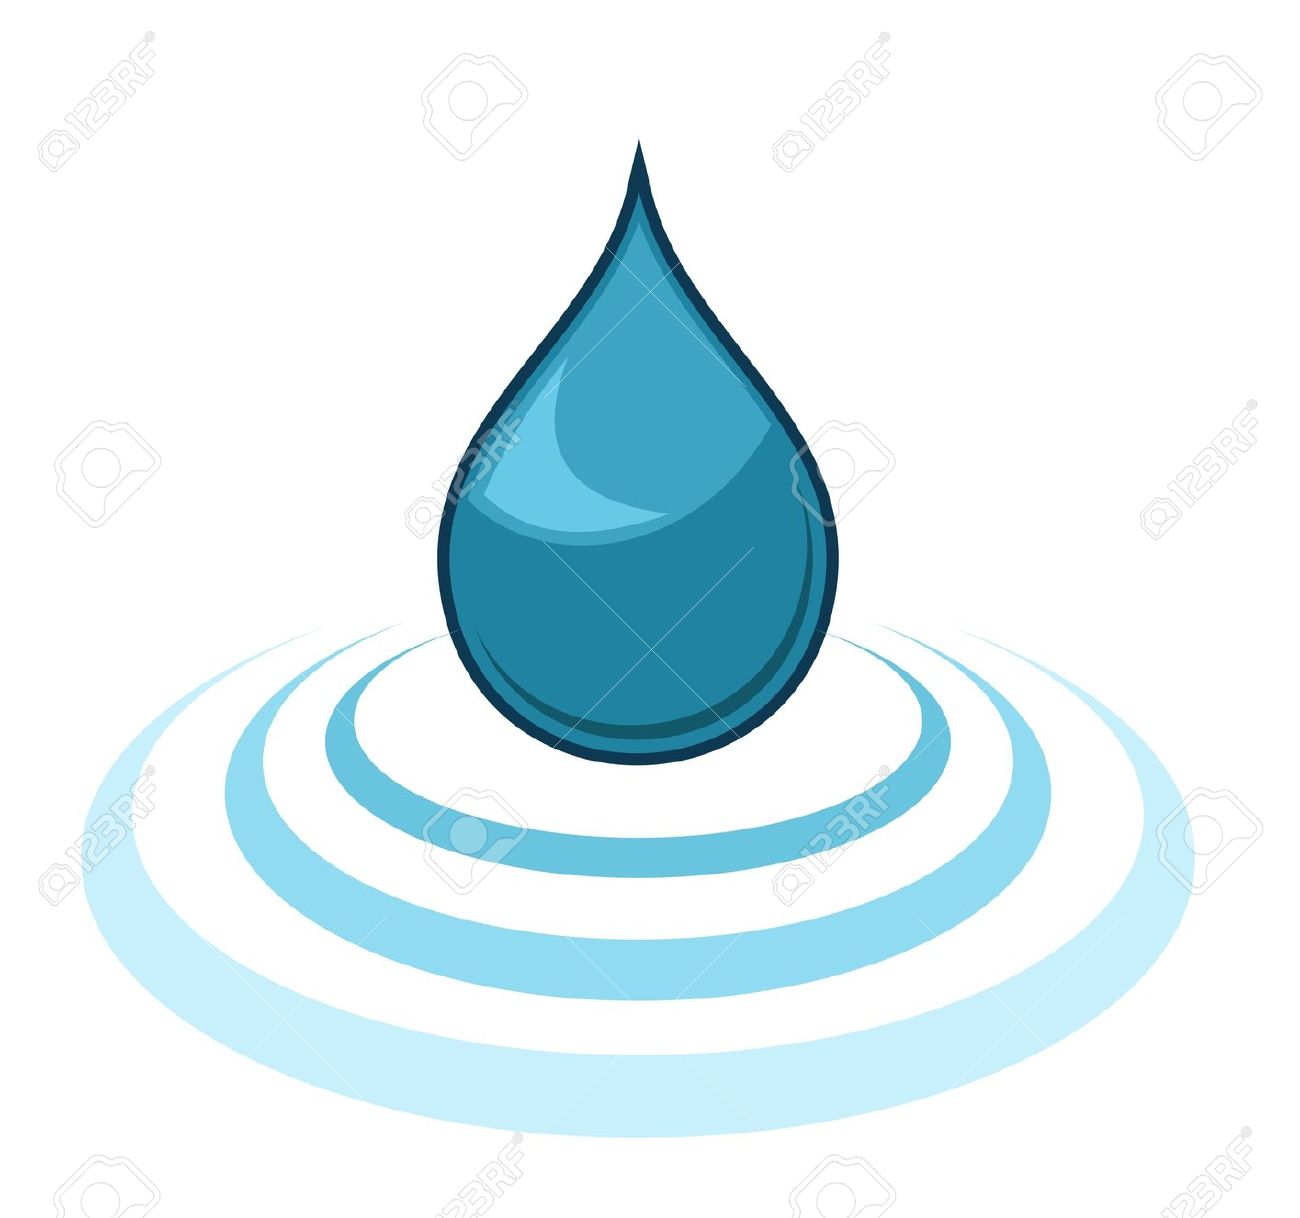 Water drop with ripple clipart.